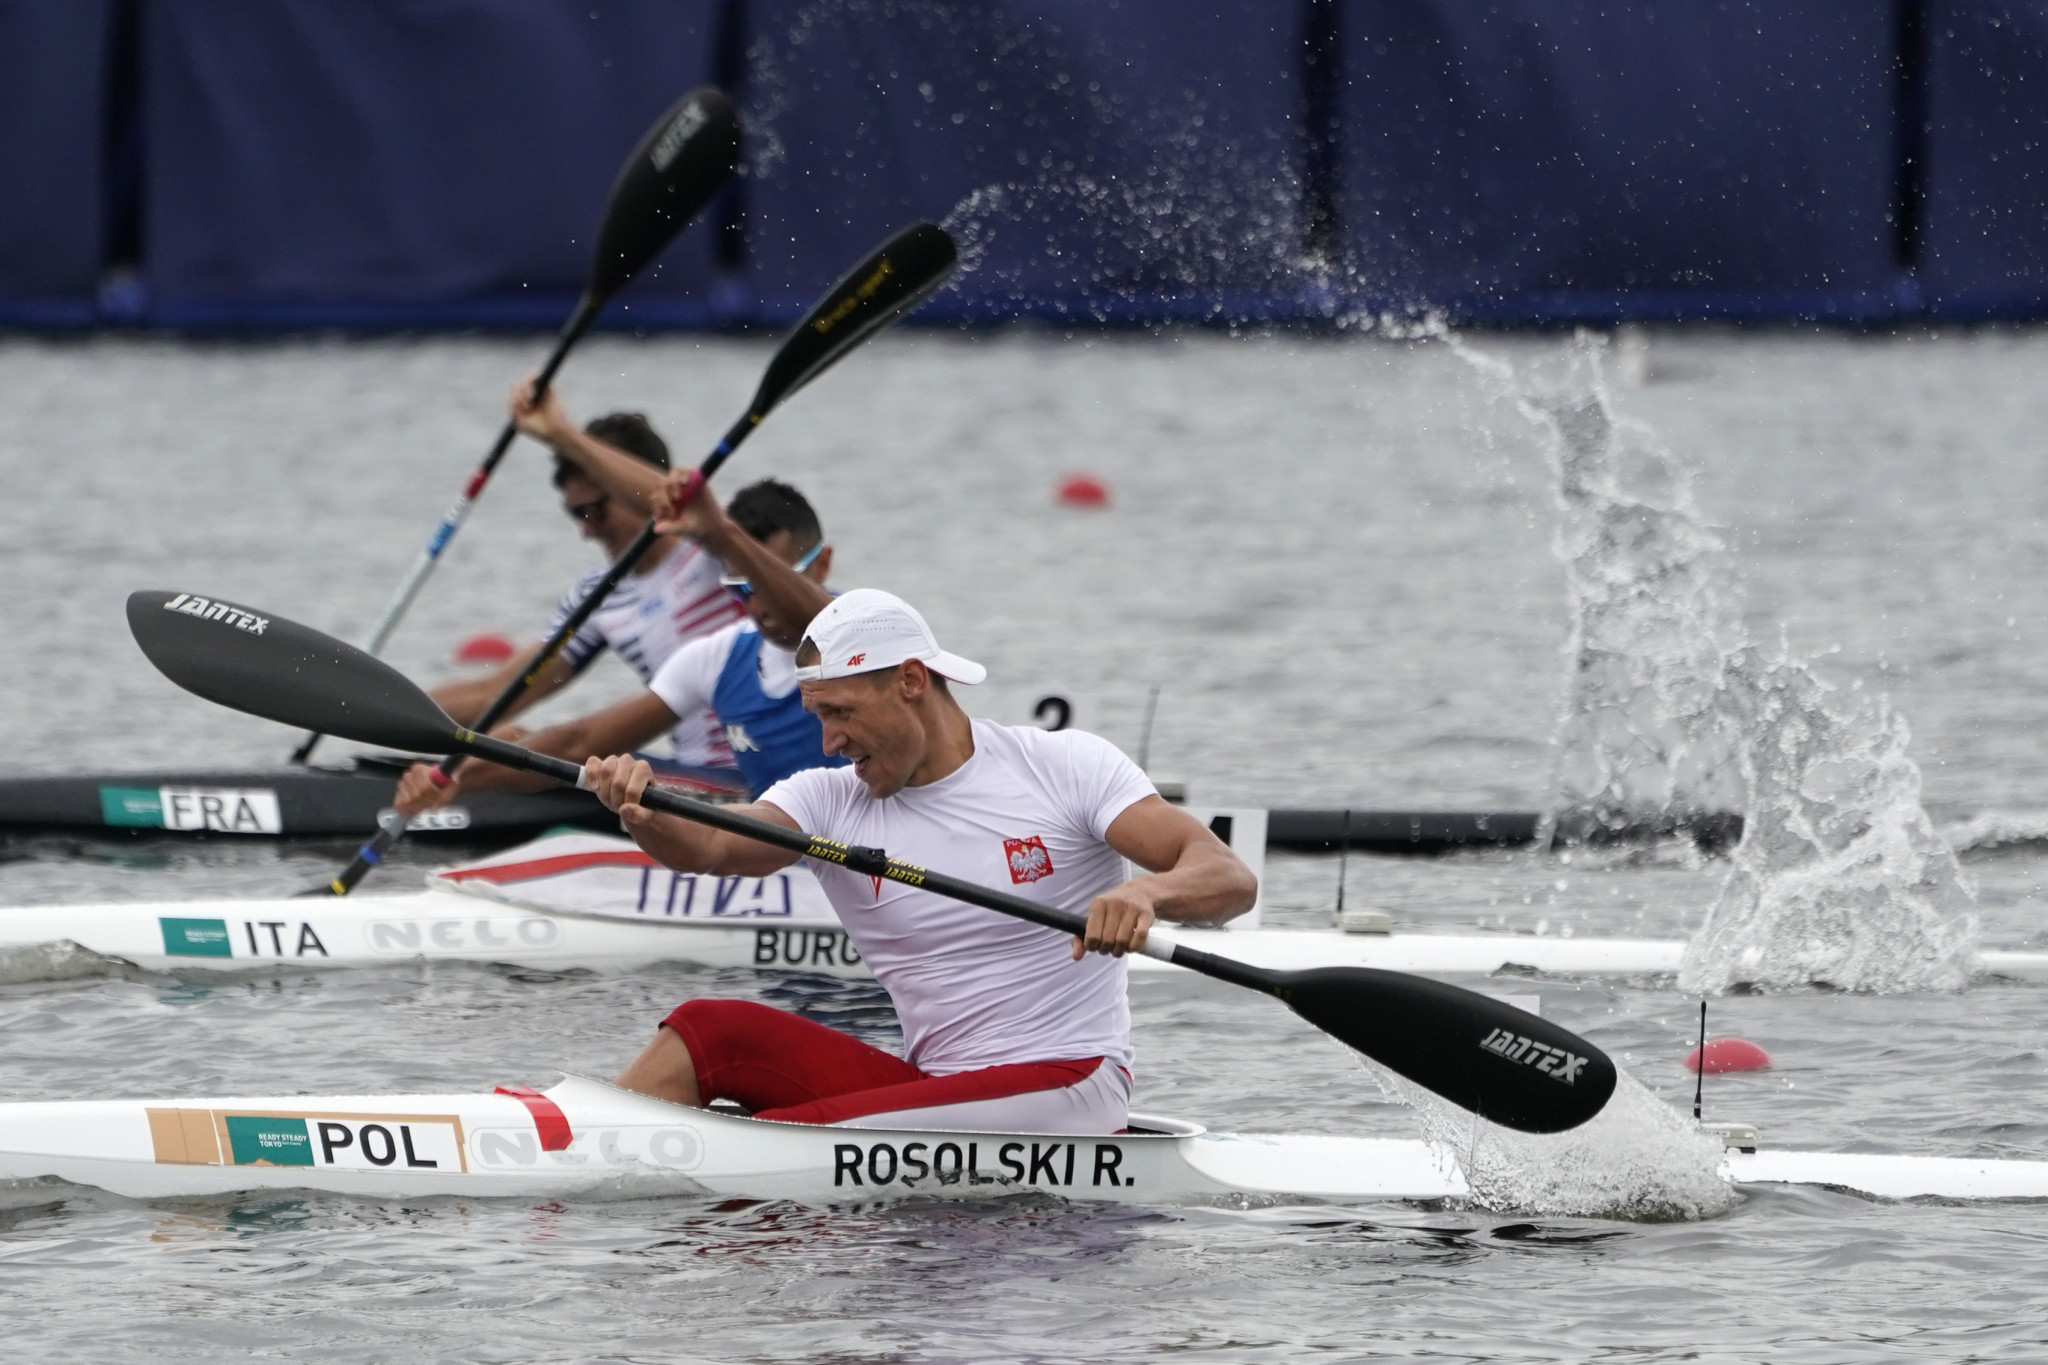 ICF say more than 40 countries registered for Tokyo 2020 qualifier in Szeged